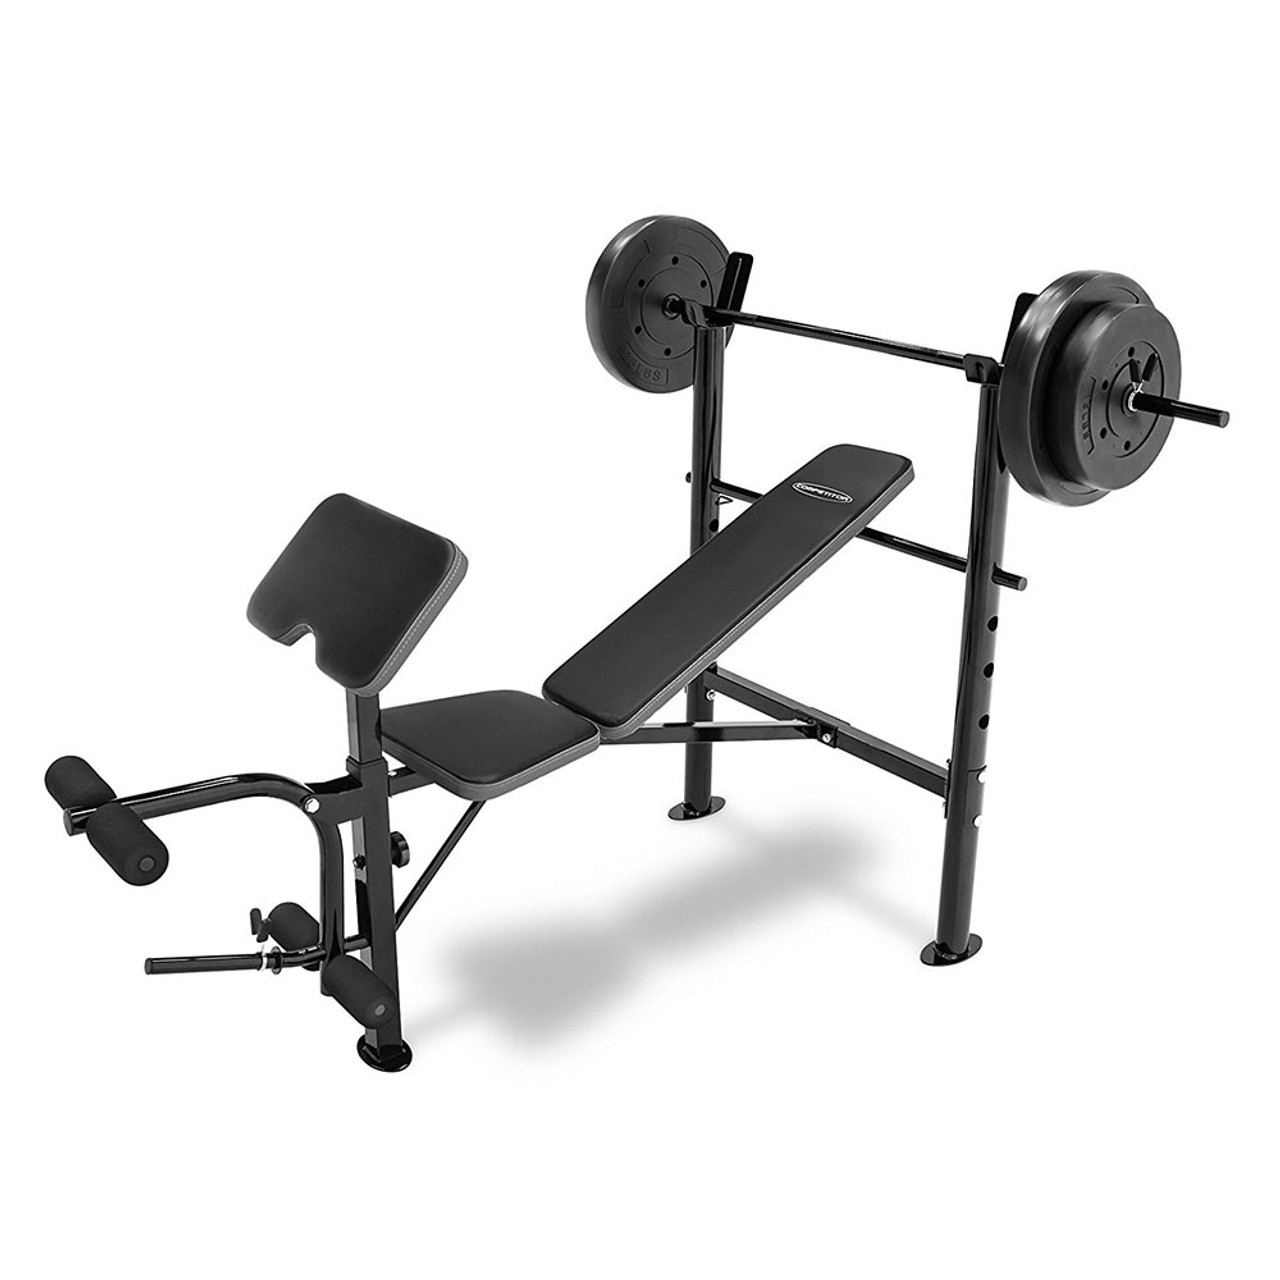 Weight Benches Bench Set For Sale Mesmerizing With Ebay: Competitor Combo Bench W/ 80lb Weight Set Quality Strength